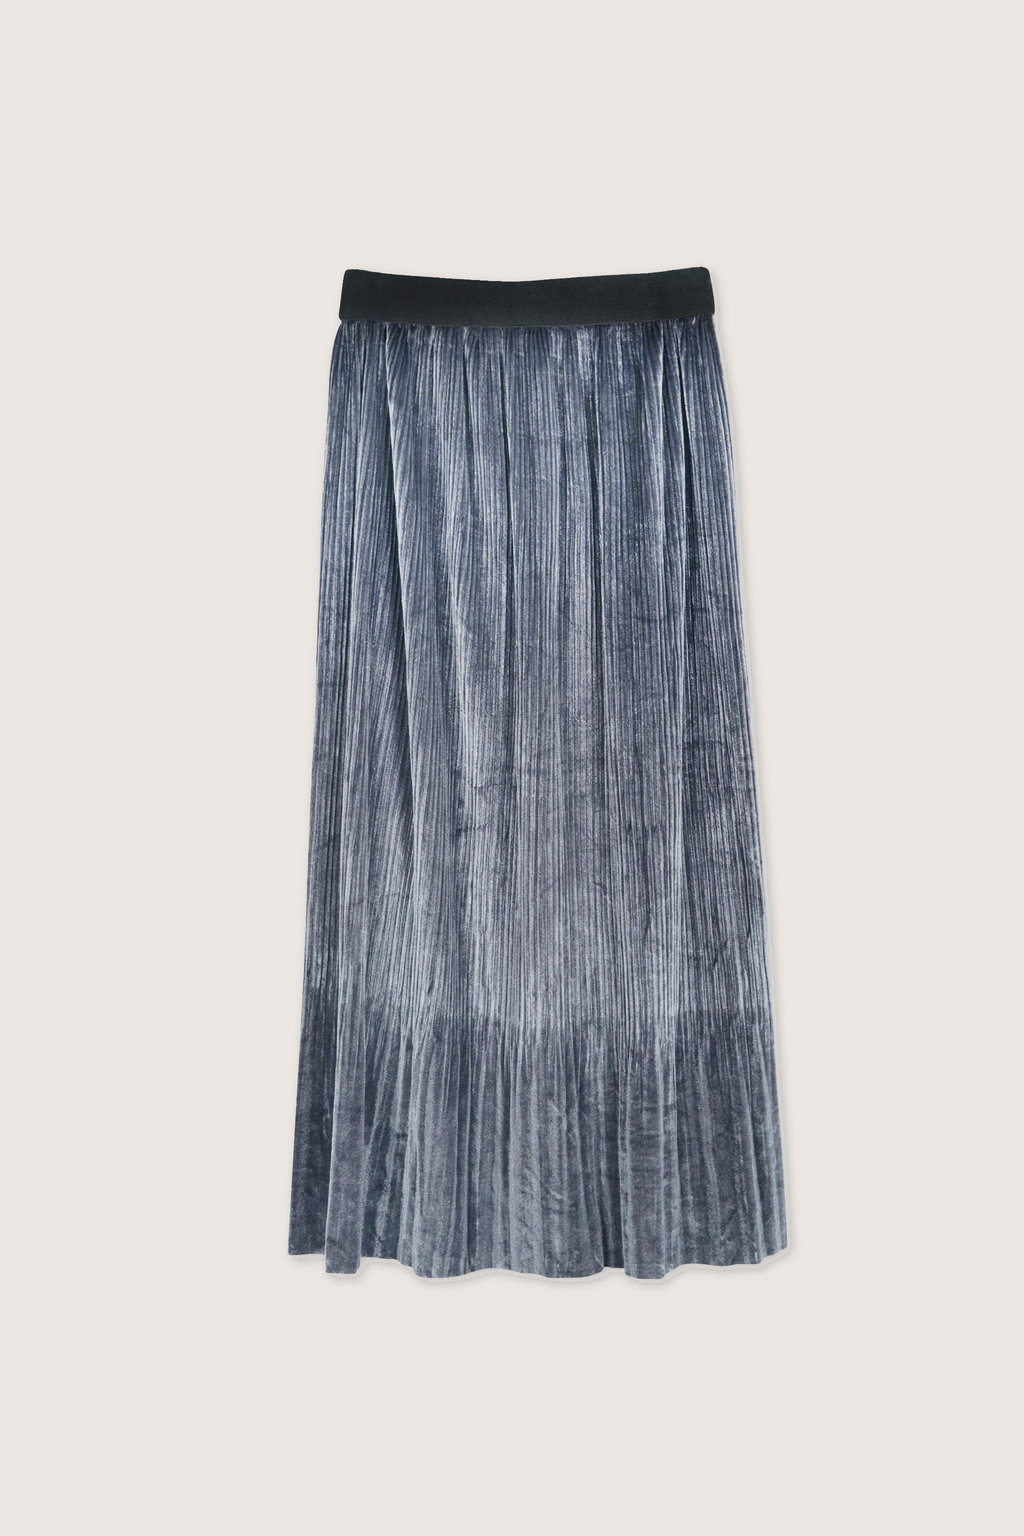 Skirt H147 Dark Navy 5